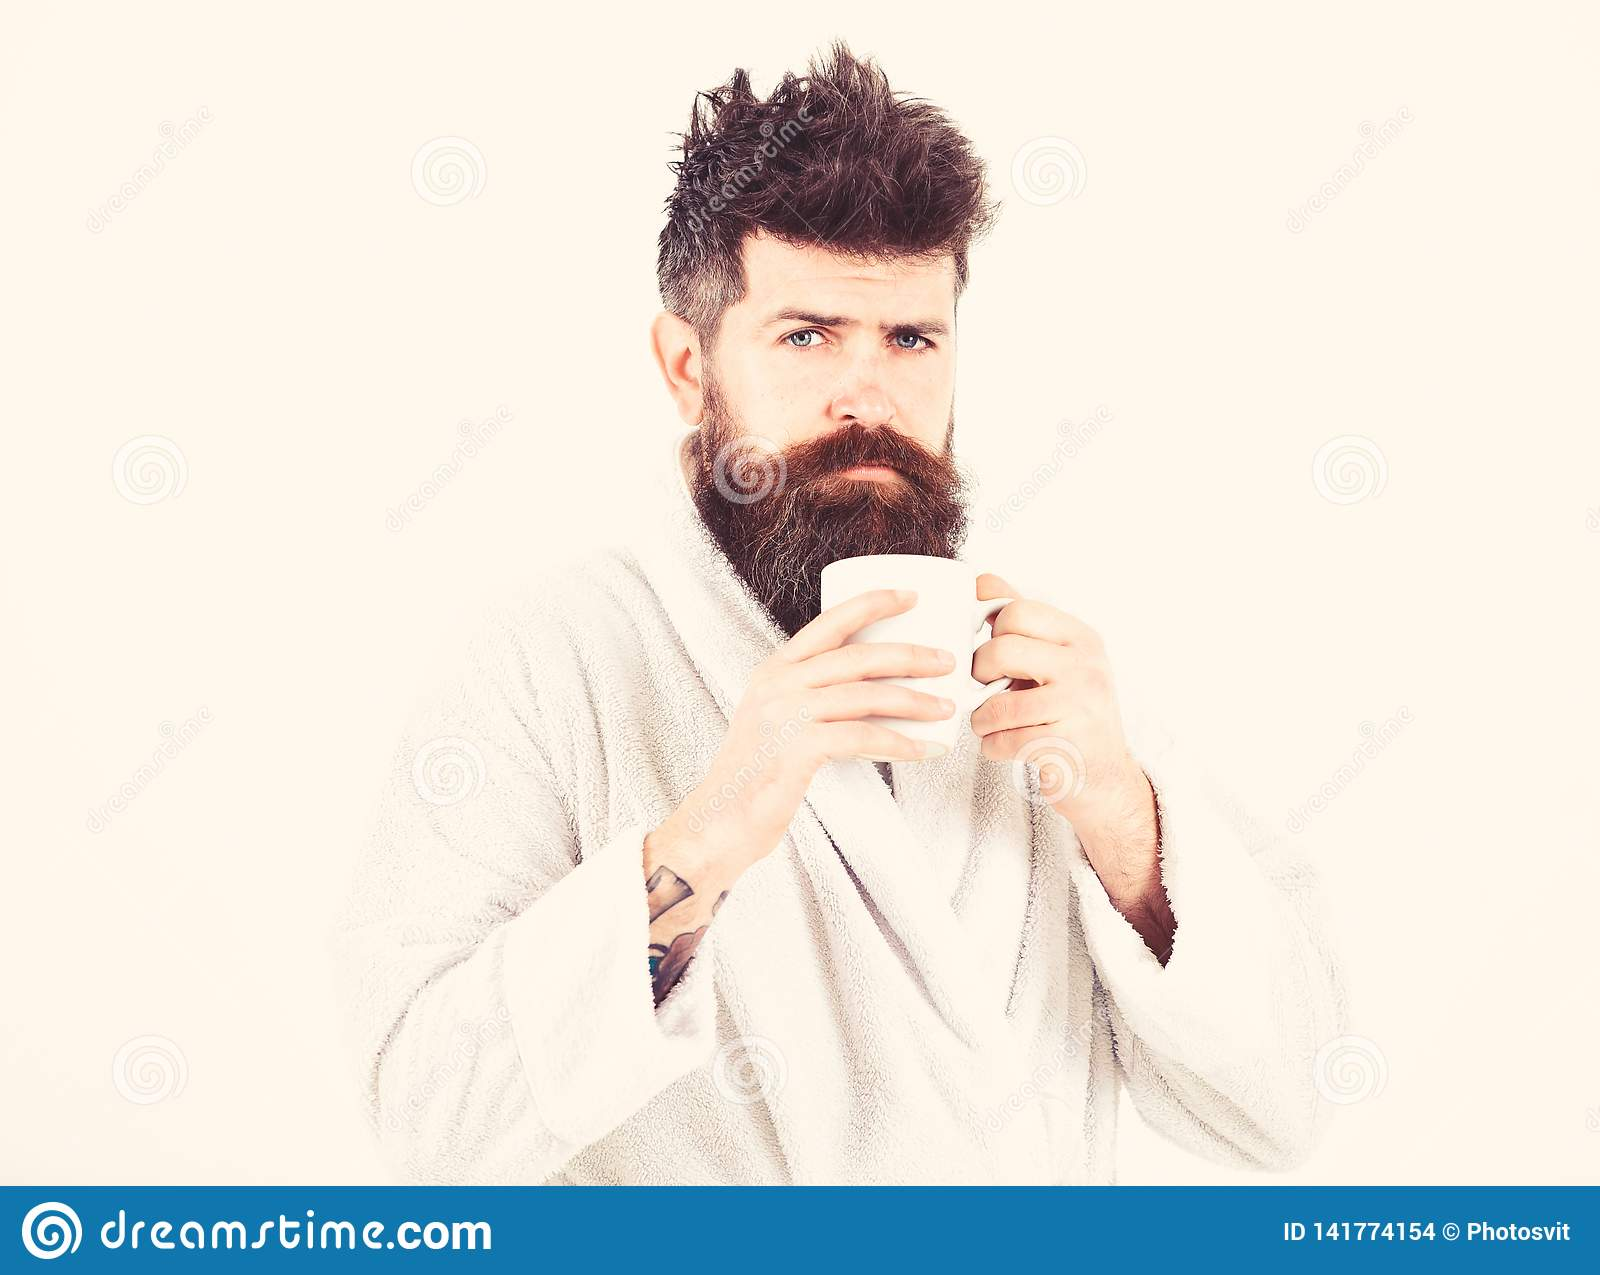 Macho drowsy, sleepy with strict face drinks coffee in morning. Morning rituals concept. Man with beard and disheveled